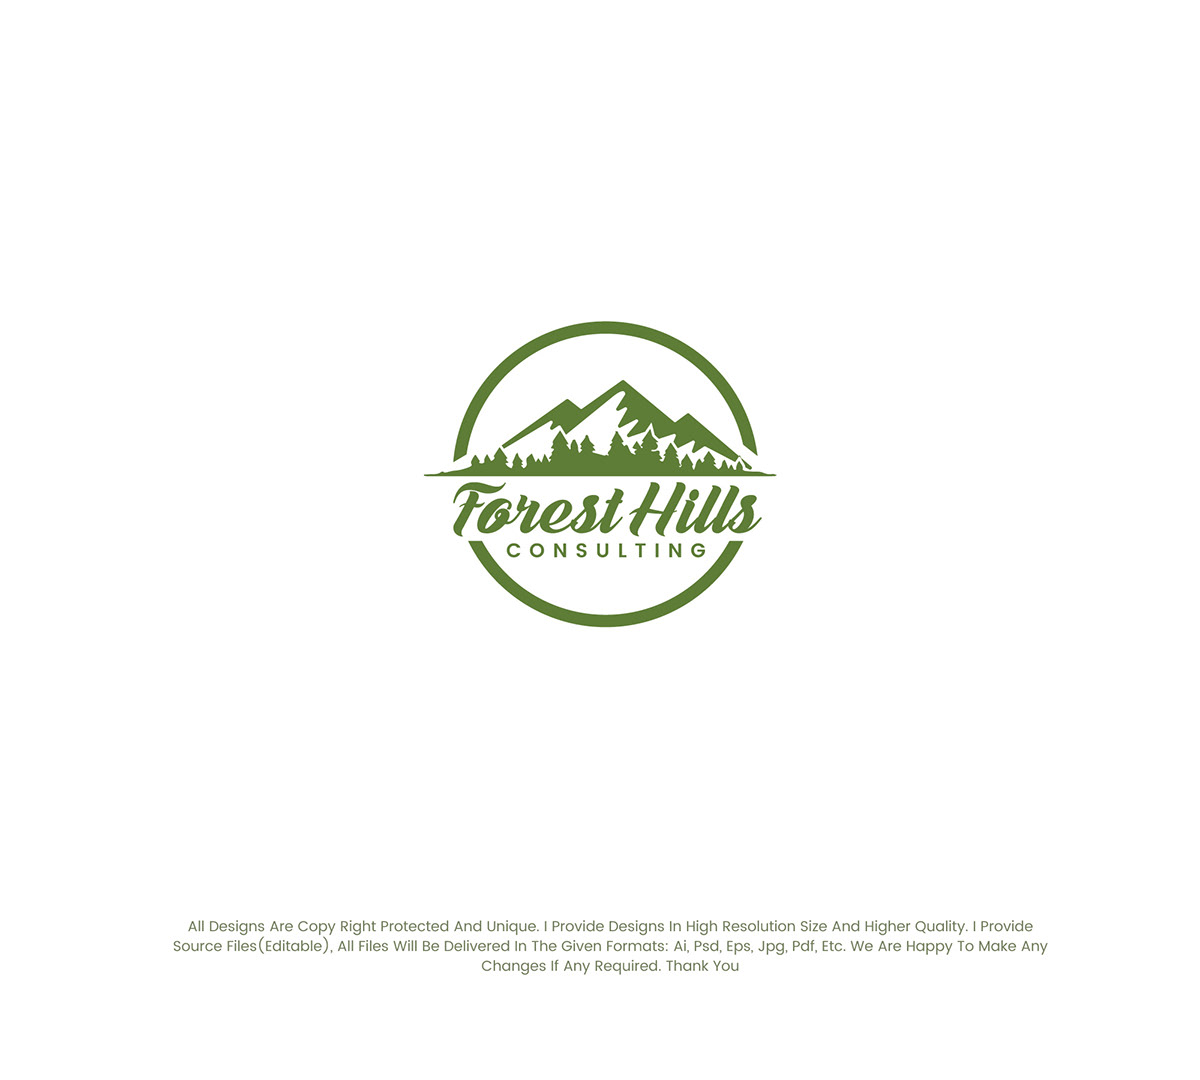 Forest Hills Logo Design and Branding on Wacom Gallery.